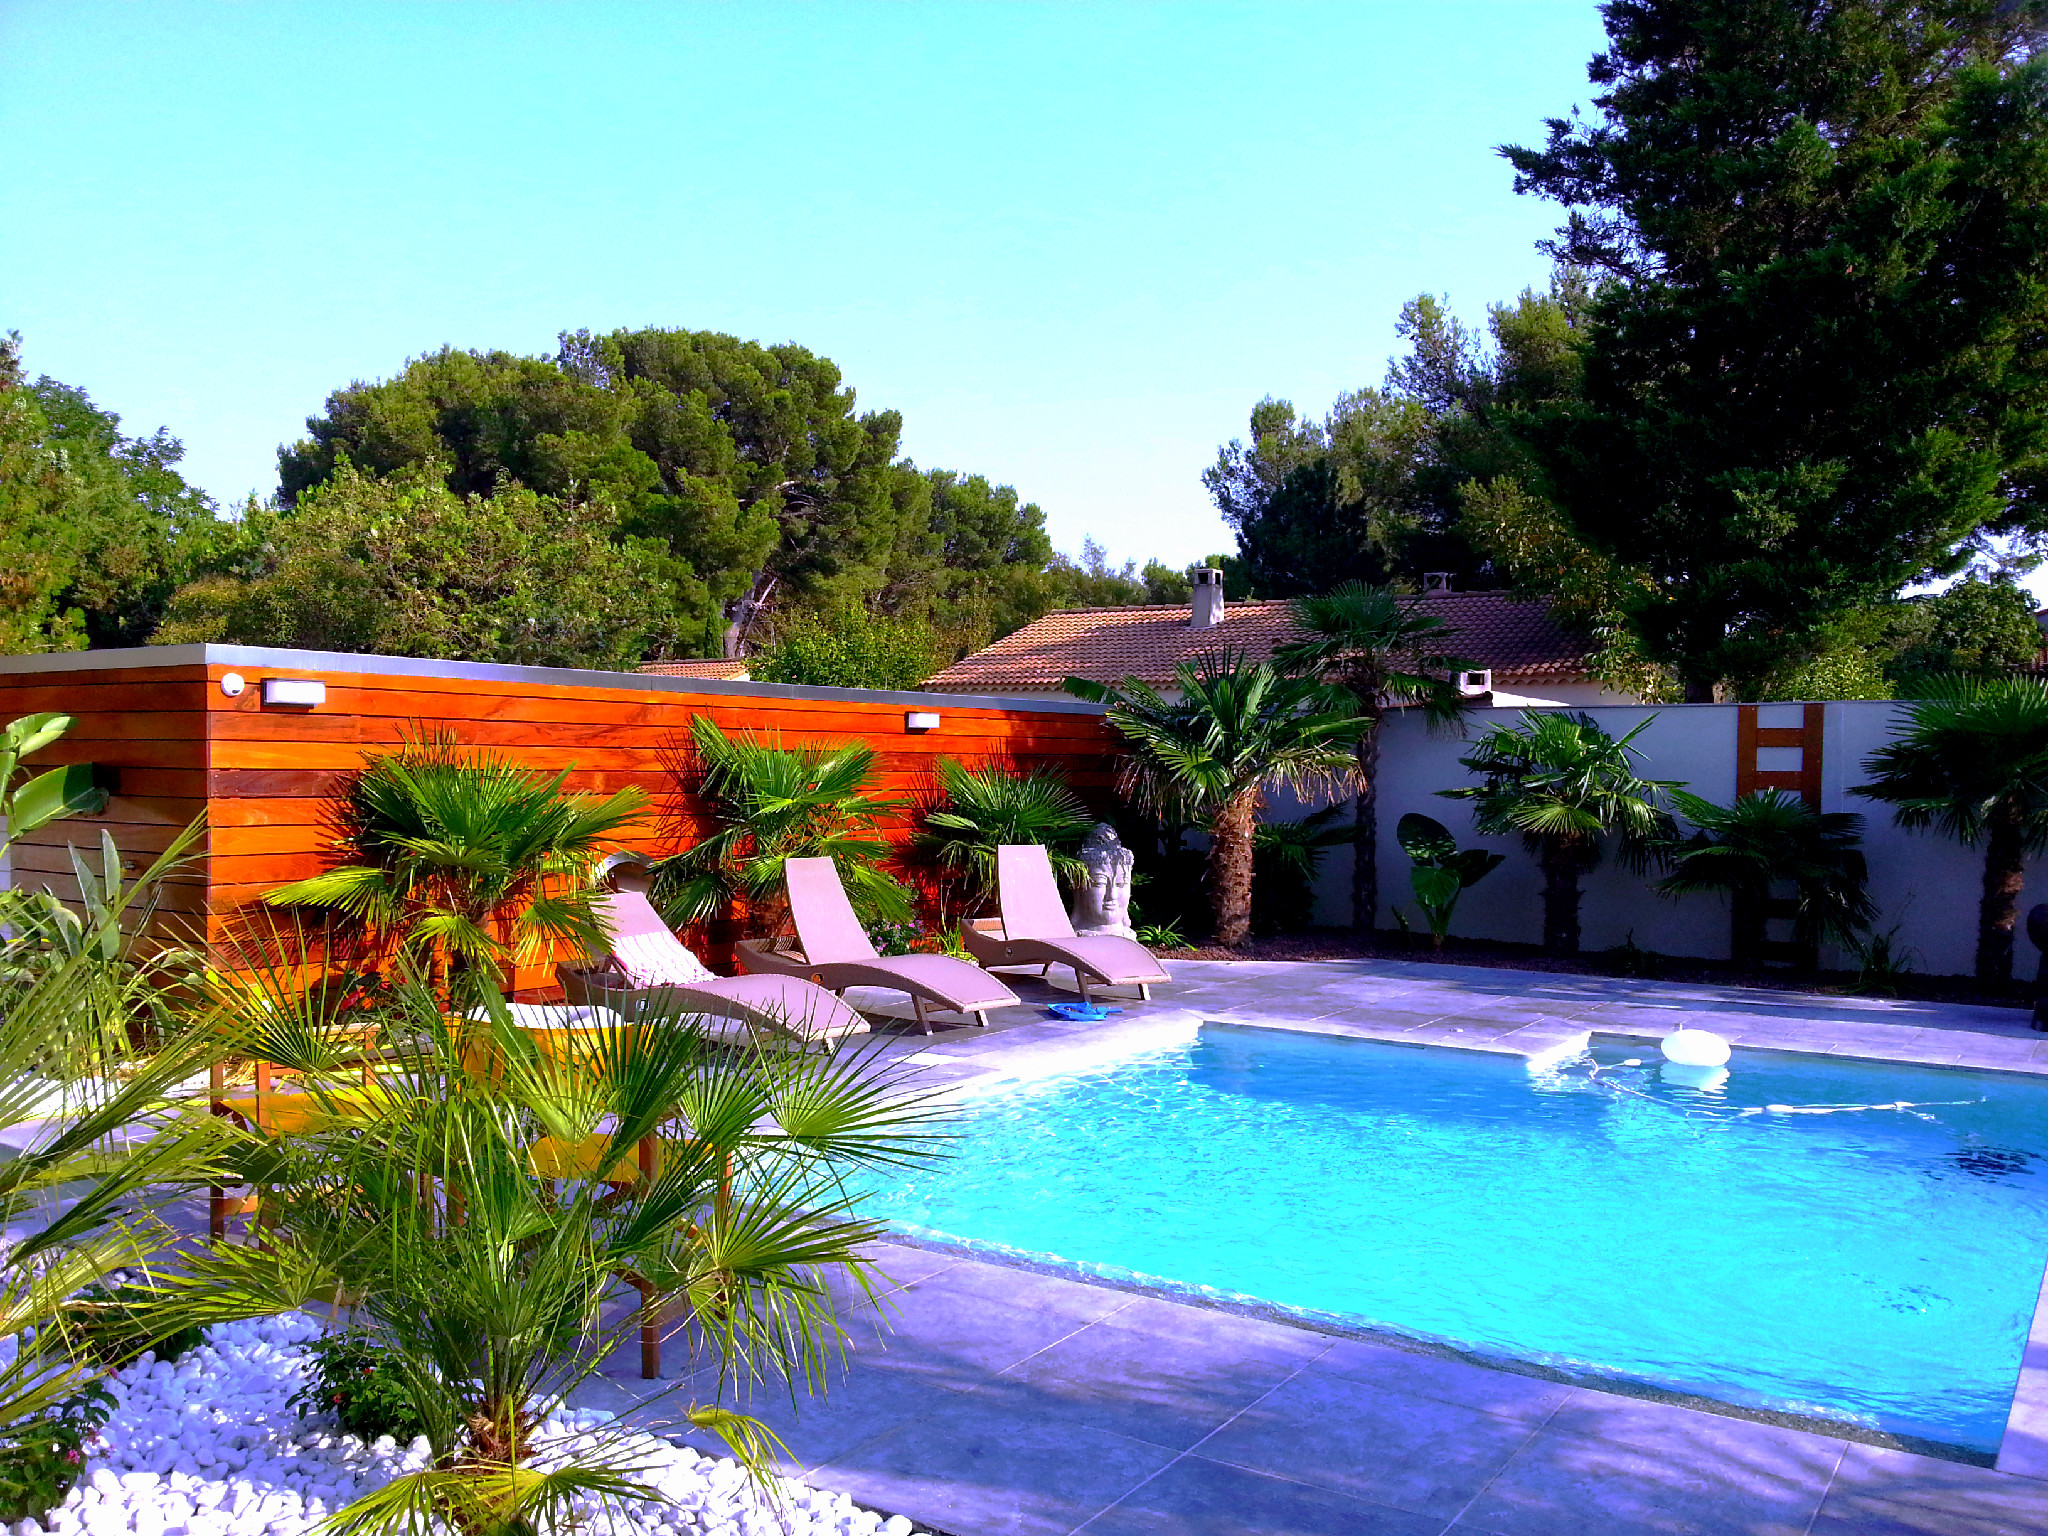 Am nagement piscine th me de jardins marseille 13 aix for Amenagement paysager autour piscine